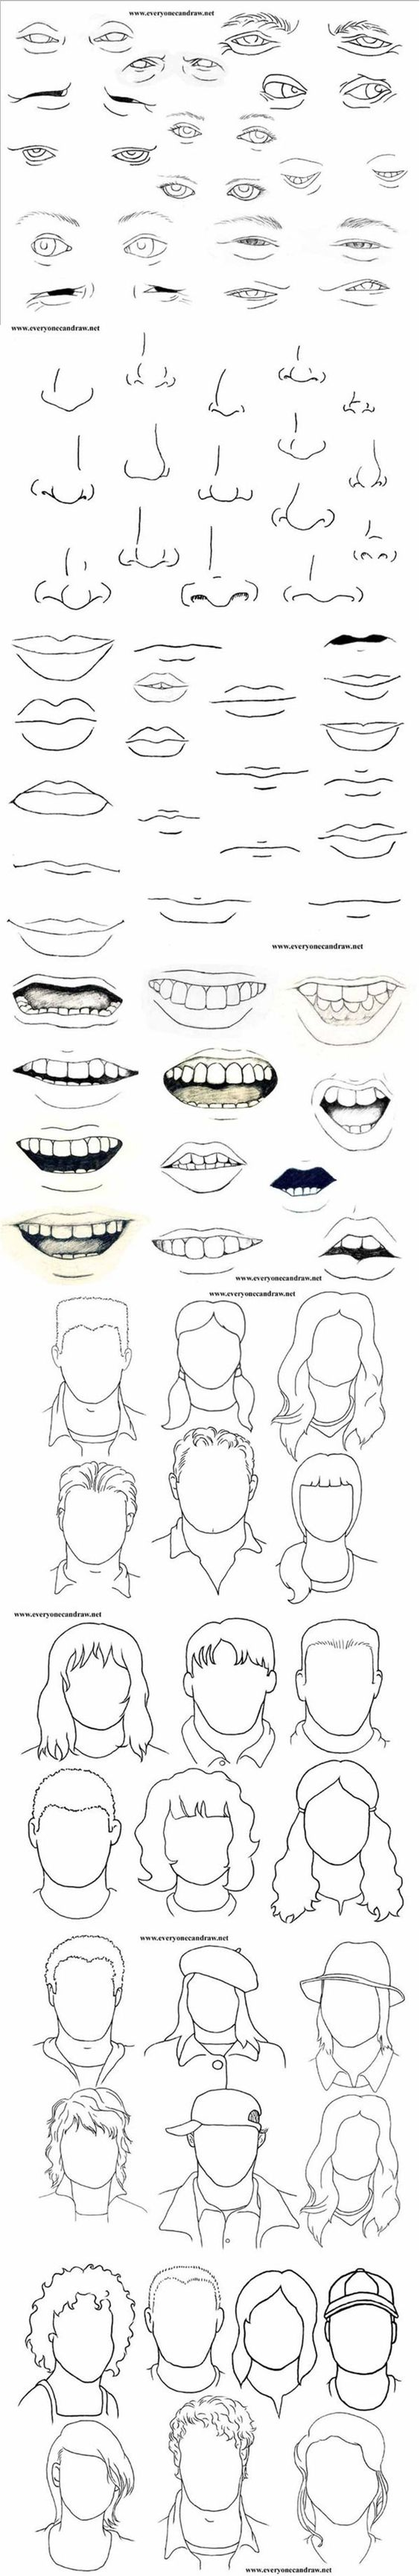 drawing lessons elementary art lesson how to draw facial features sketchbook assignments